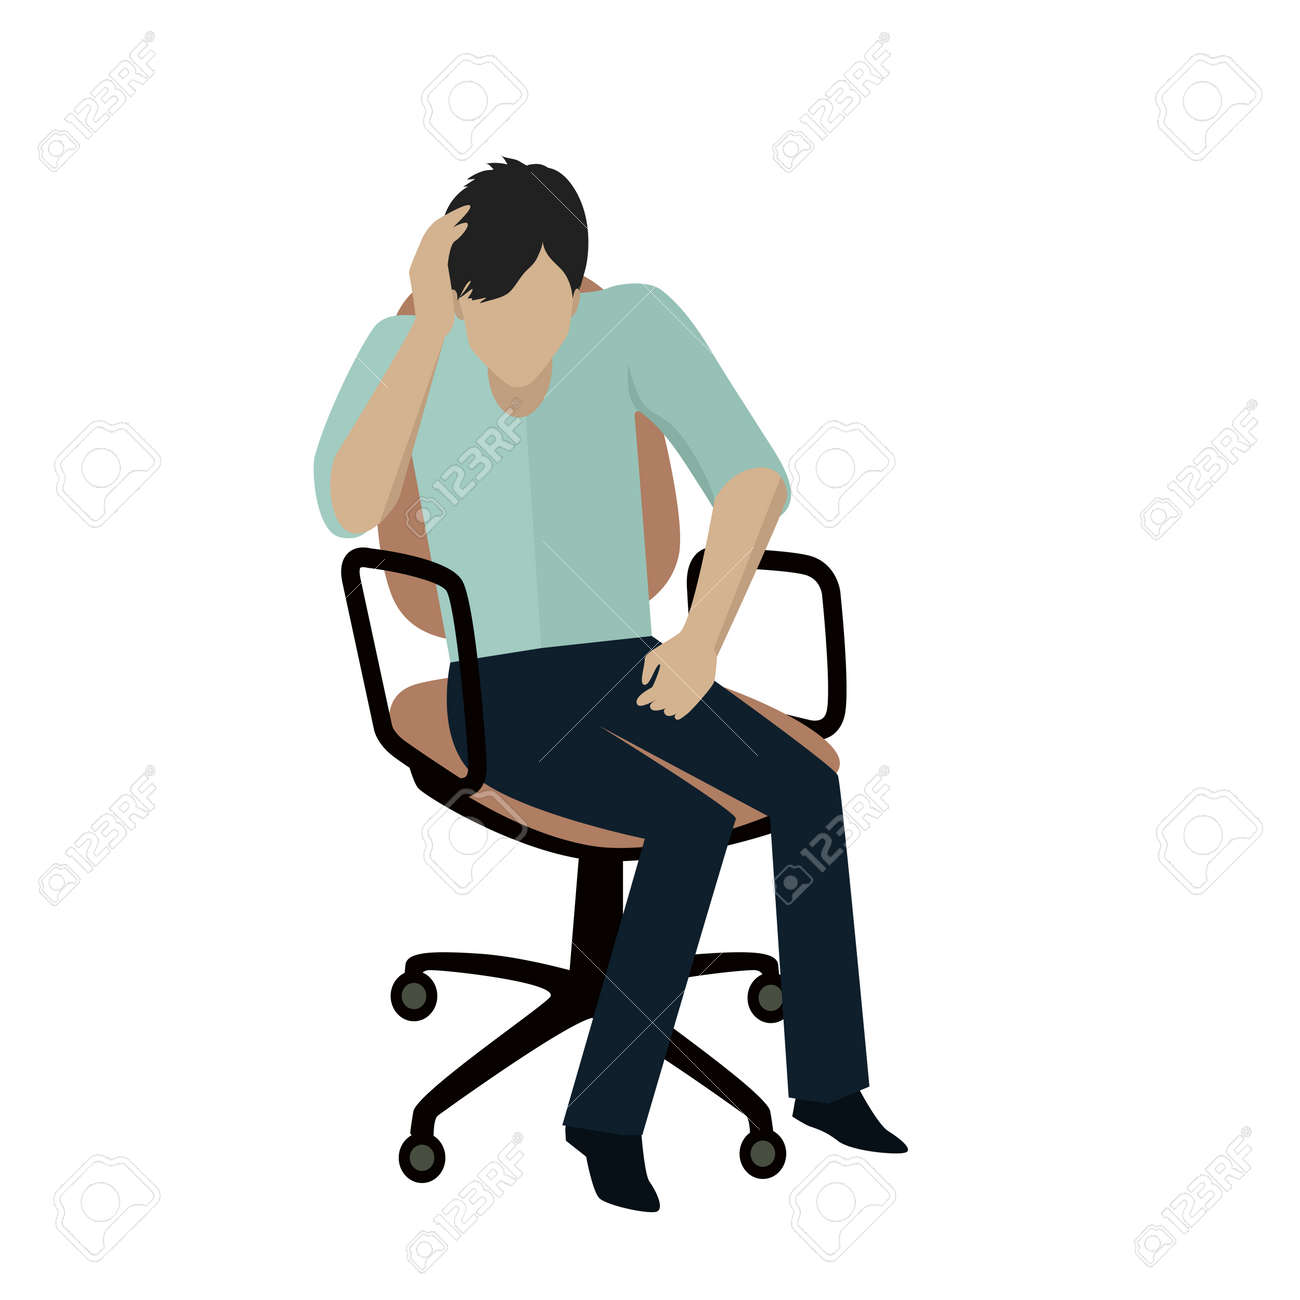 Chair Pants Man In Light Blue Shirt And Blue Pants Sitting On Office Armchair